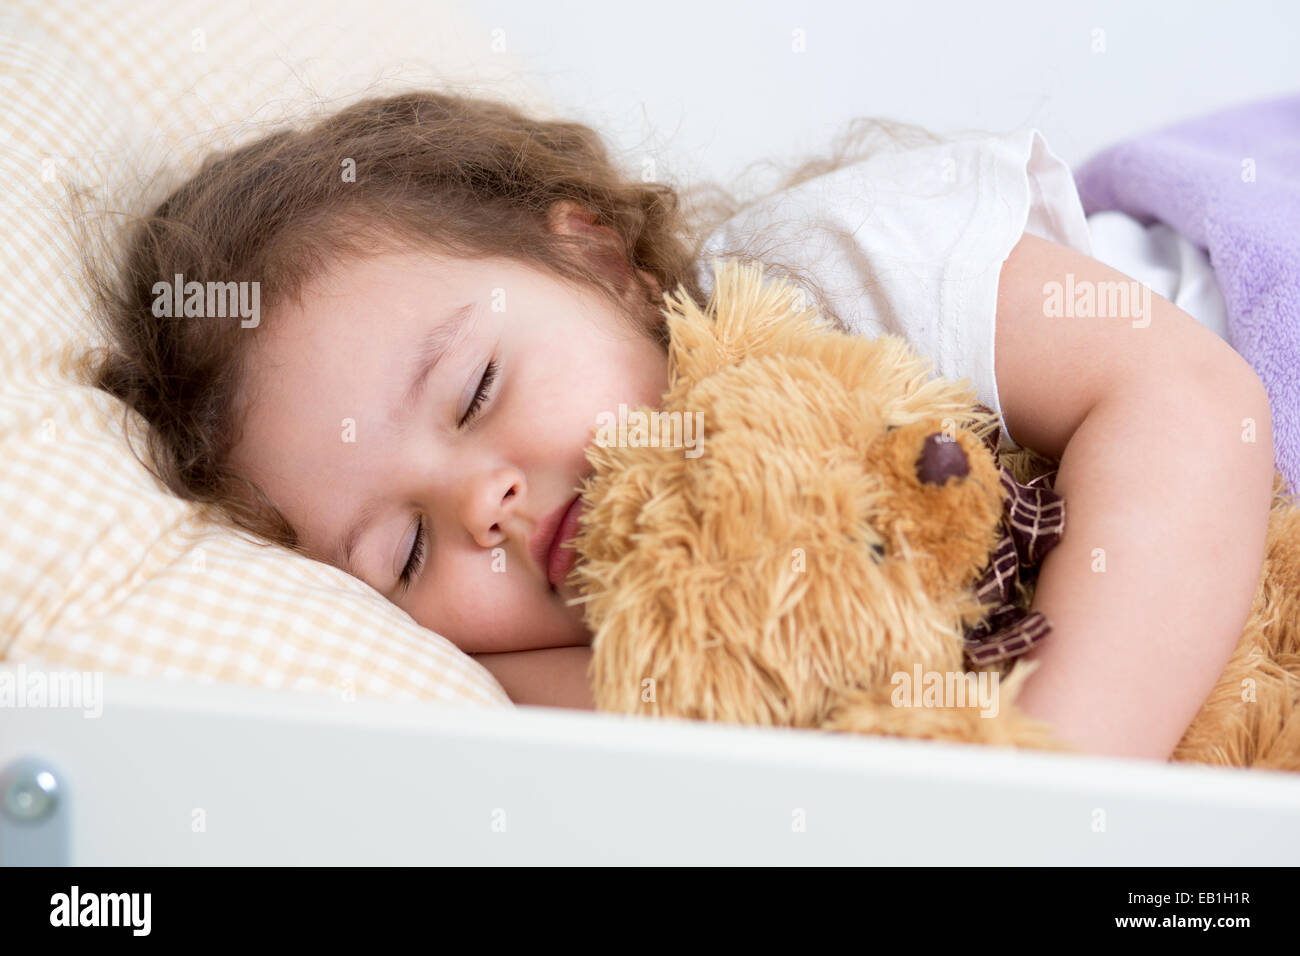 Pretty kid girl sleeping in bed - Stock Image